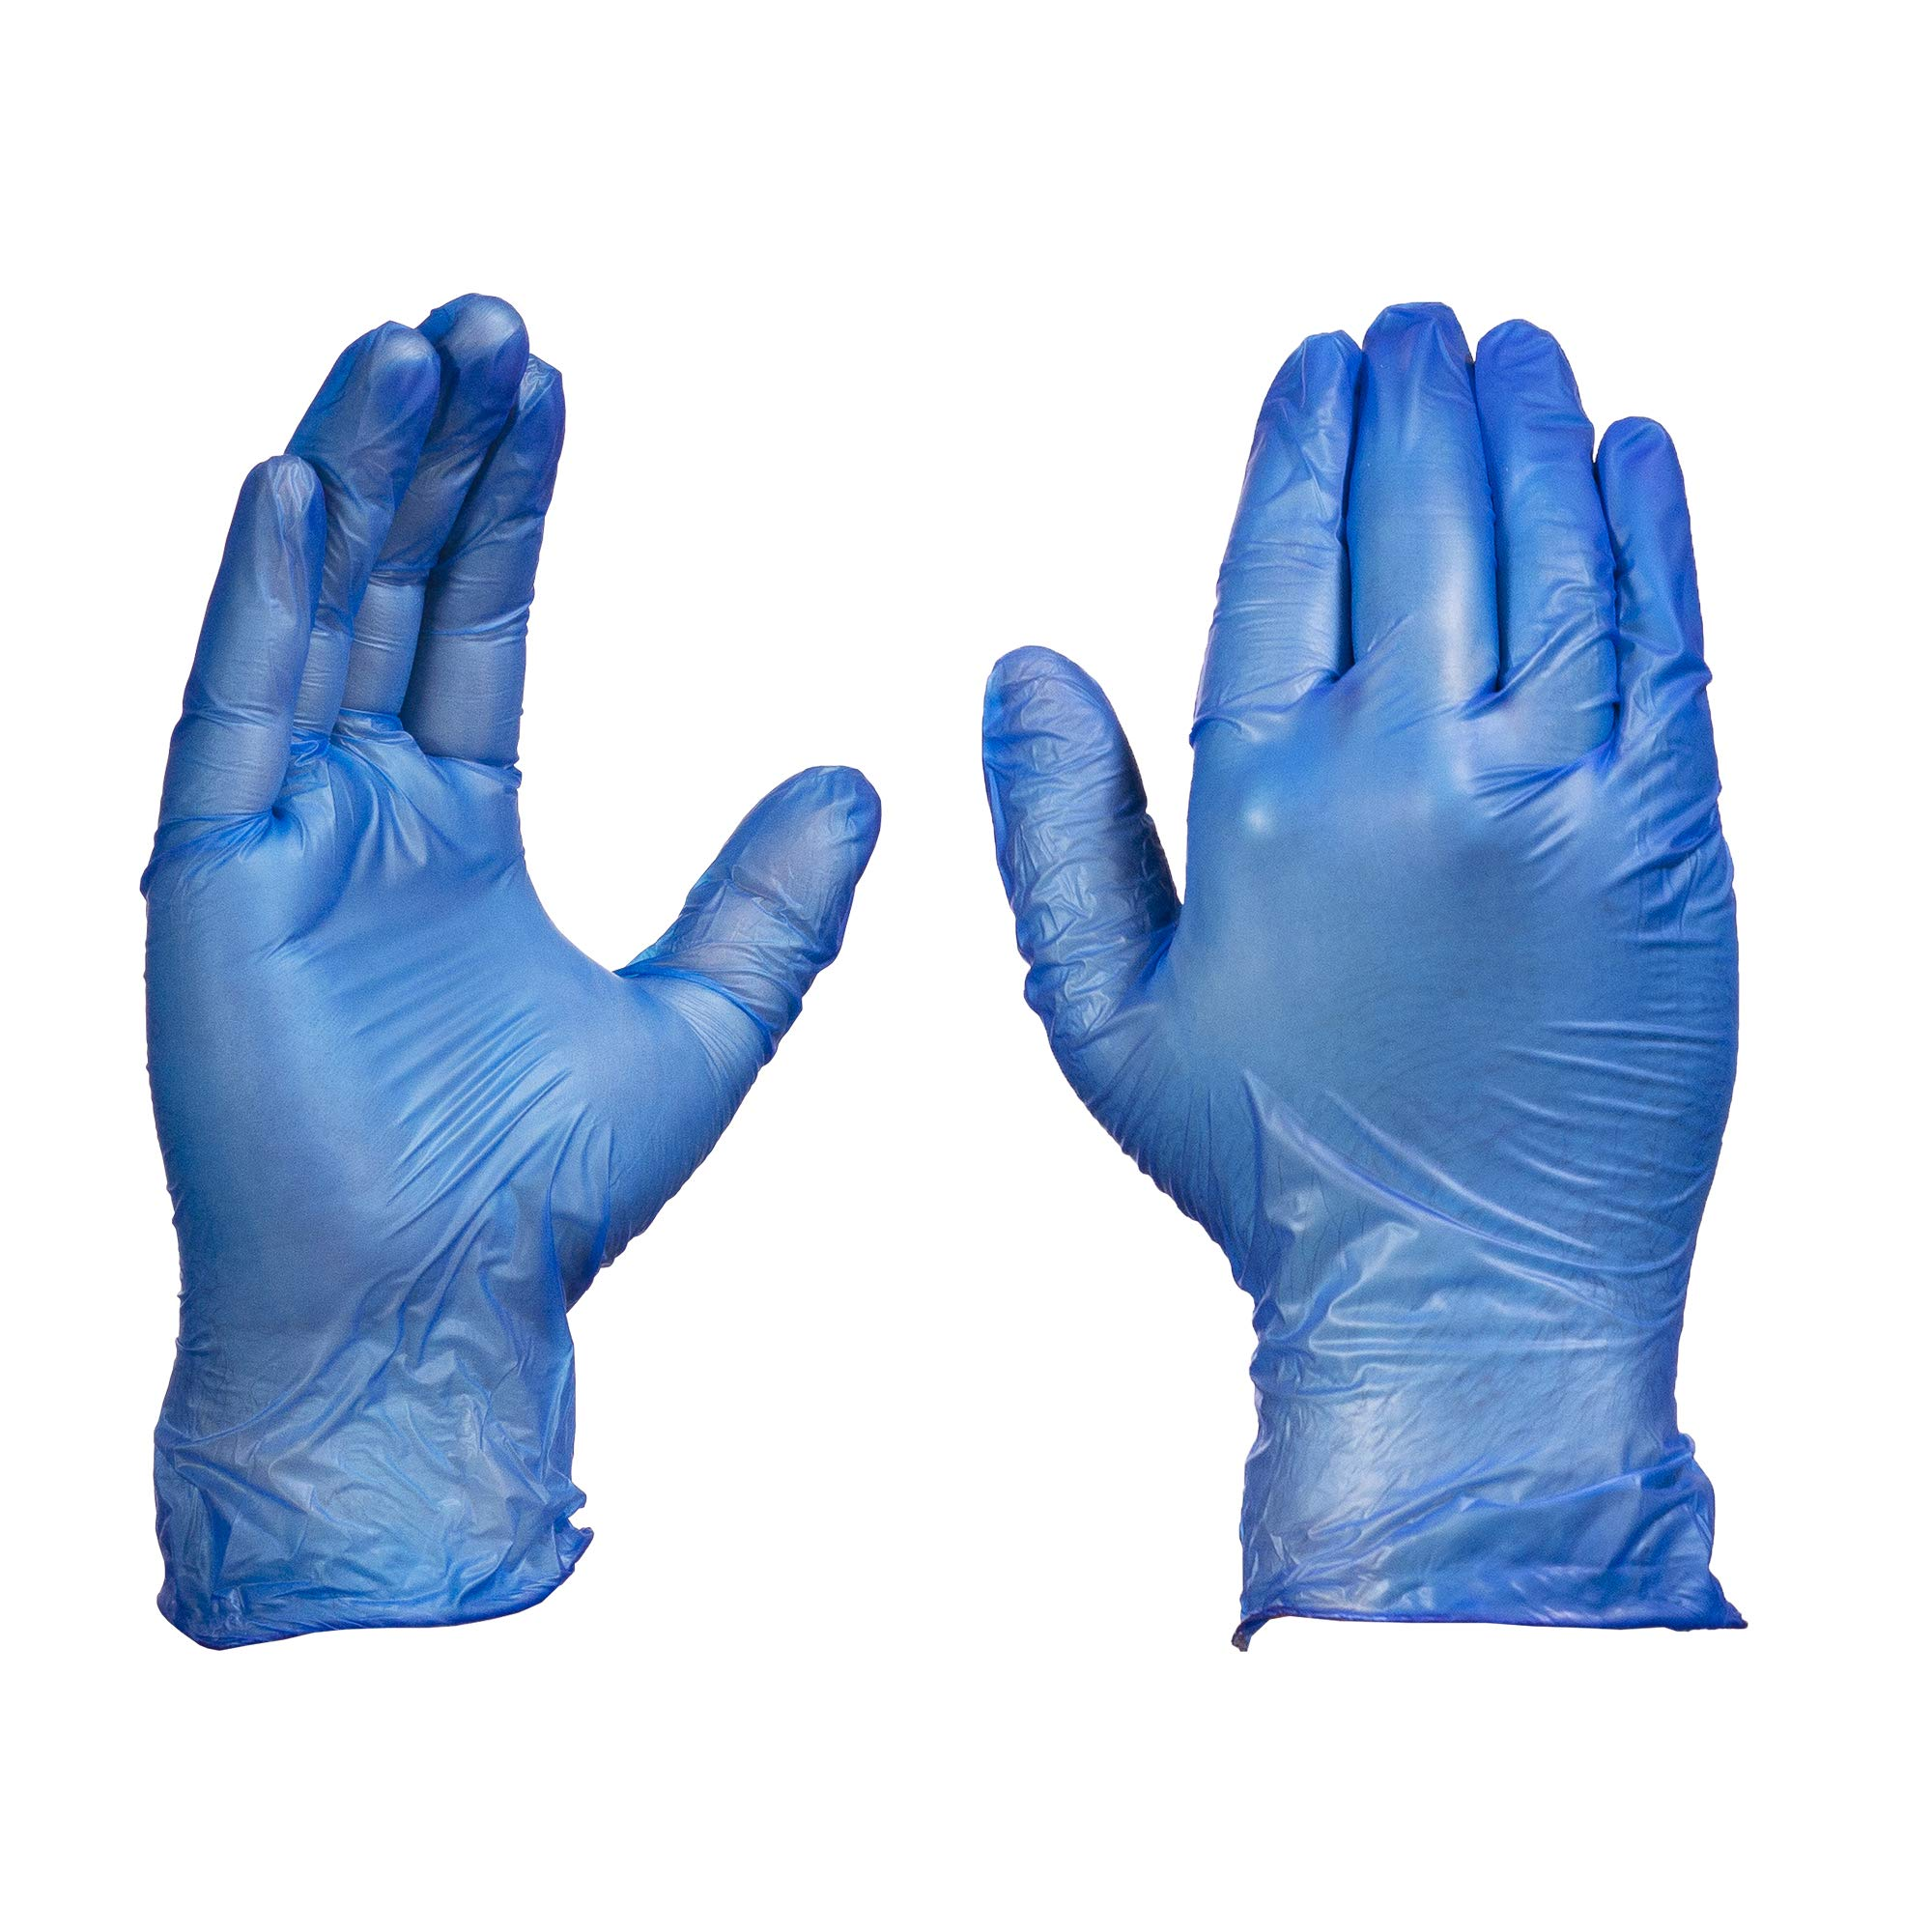 AMMEX Vinyl Disposable Gloves - Powder-Free, Food Safe, Non-Sterile, 4 mil Thick, Large, Blue (Case of 1000) by GLOVEPLUS (Image #1)